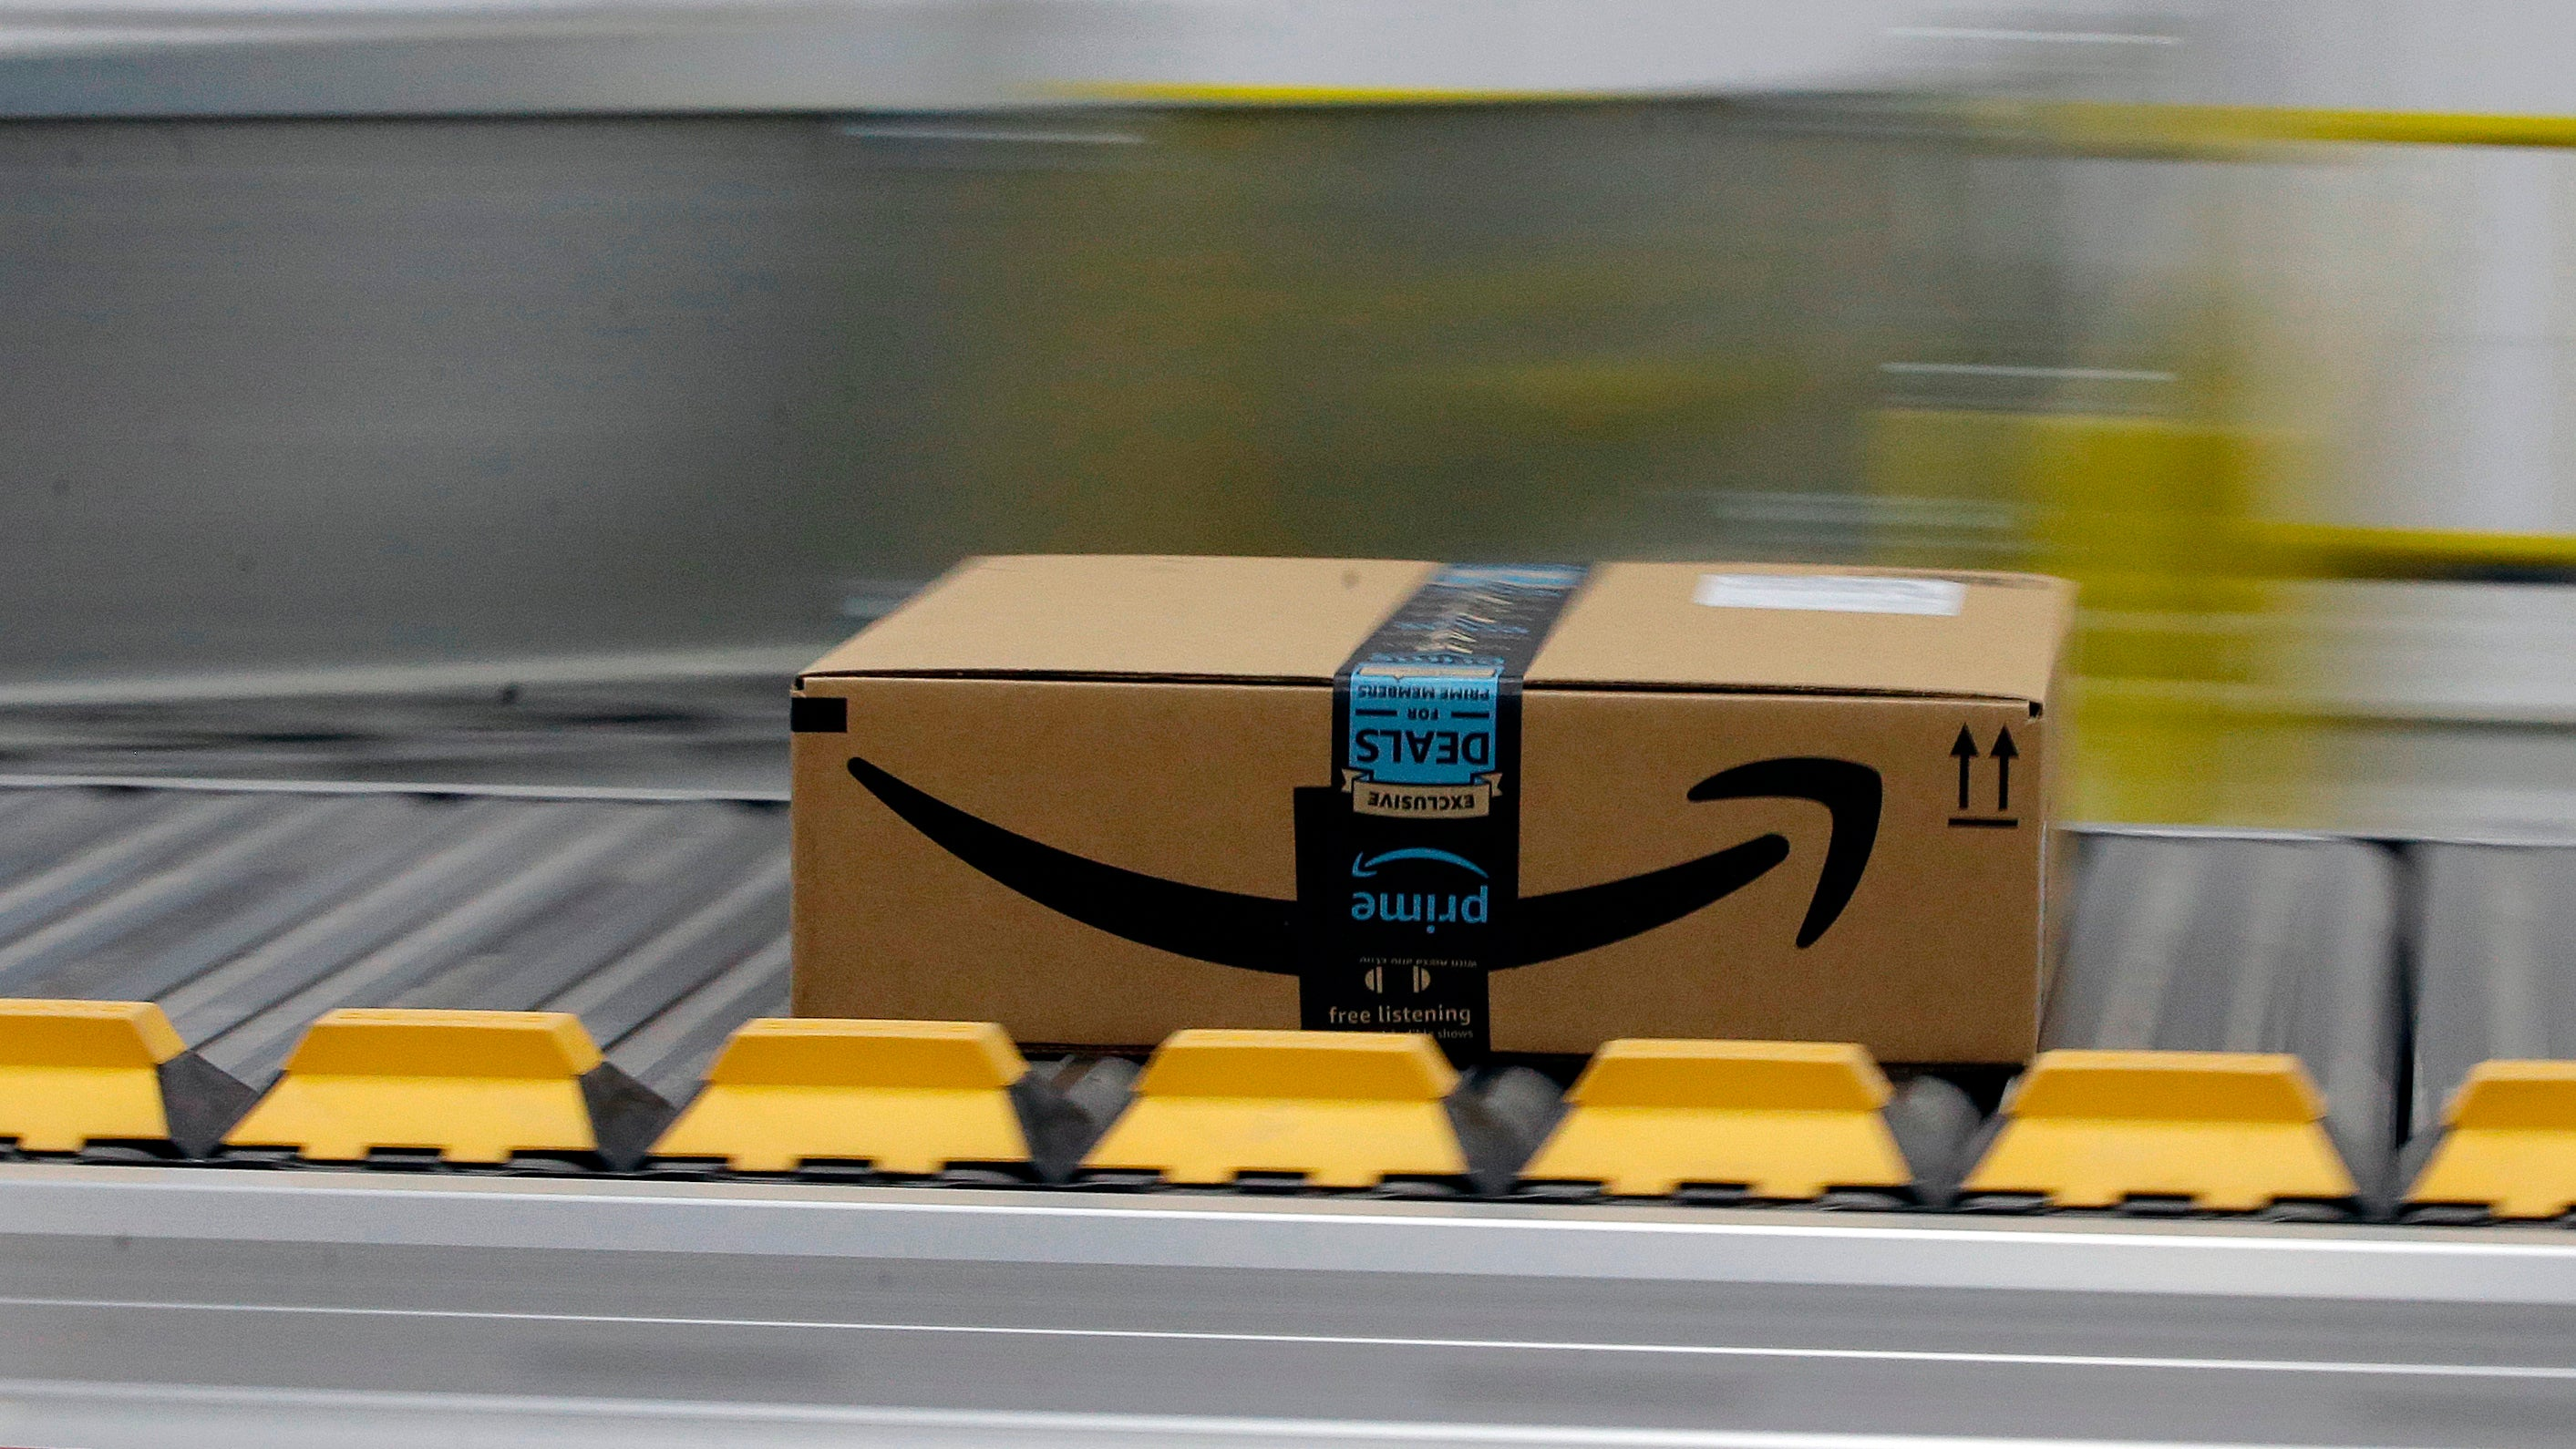 Amazon Sued By Former Human Resources Administrator For Alleged 'Unlawful Employment Practices'